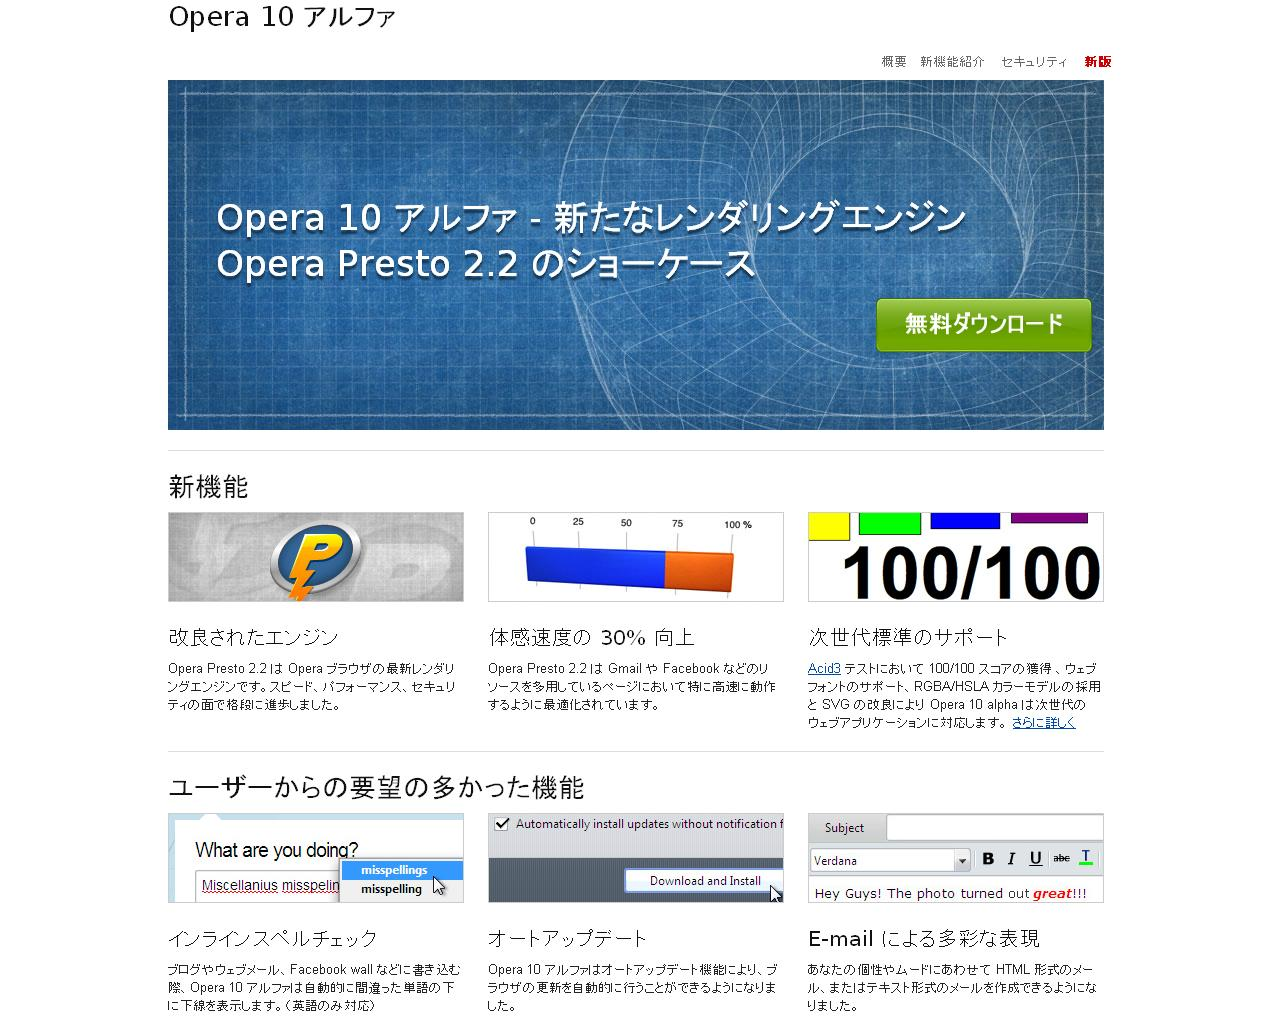 Opera 10 alpha's website